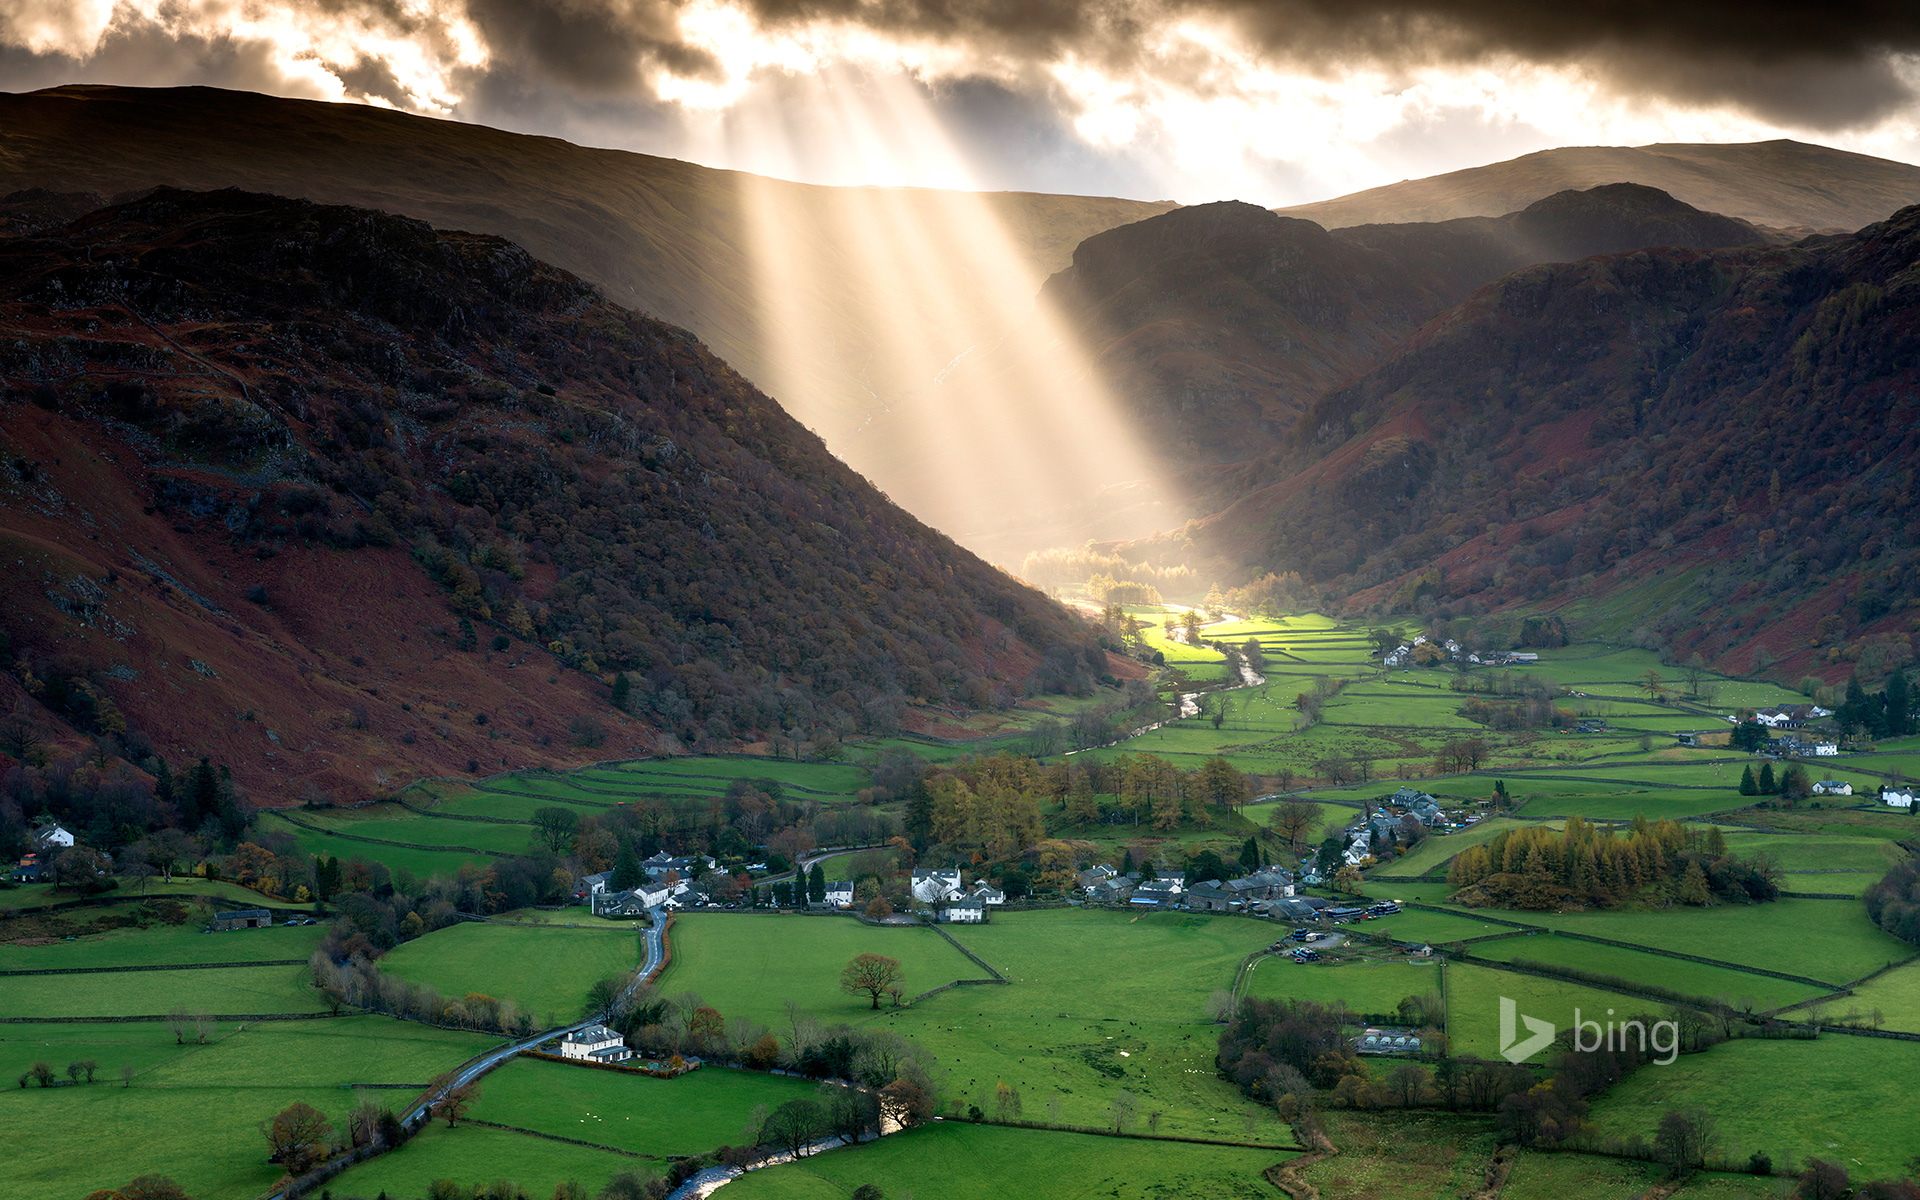 Shafts of light work their way across the Borrowdale valley in the English Lake District National park